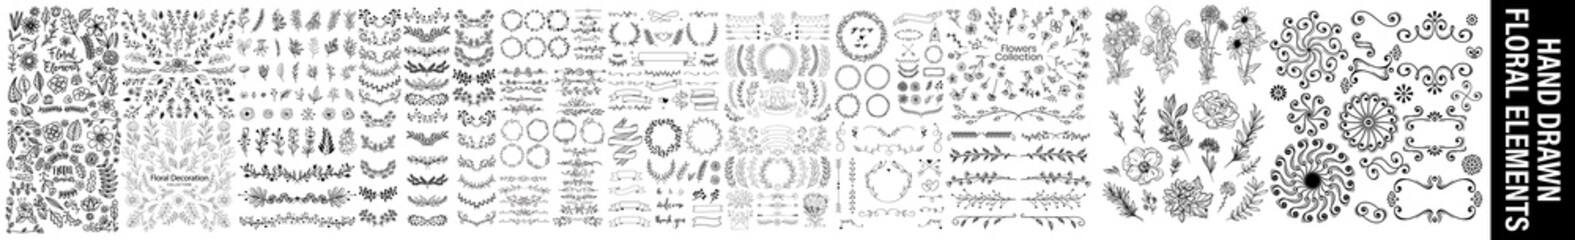 Obraz Hand sketched vector vintage elements ( laurels, leaves, flowers, swirls and feathers).sketches and line doodles hand drawn design floral elements, Hand drawn vintage leaves, arrows, feathers. - fototapety do salonu